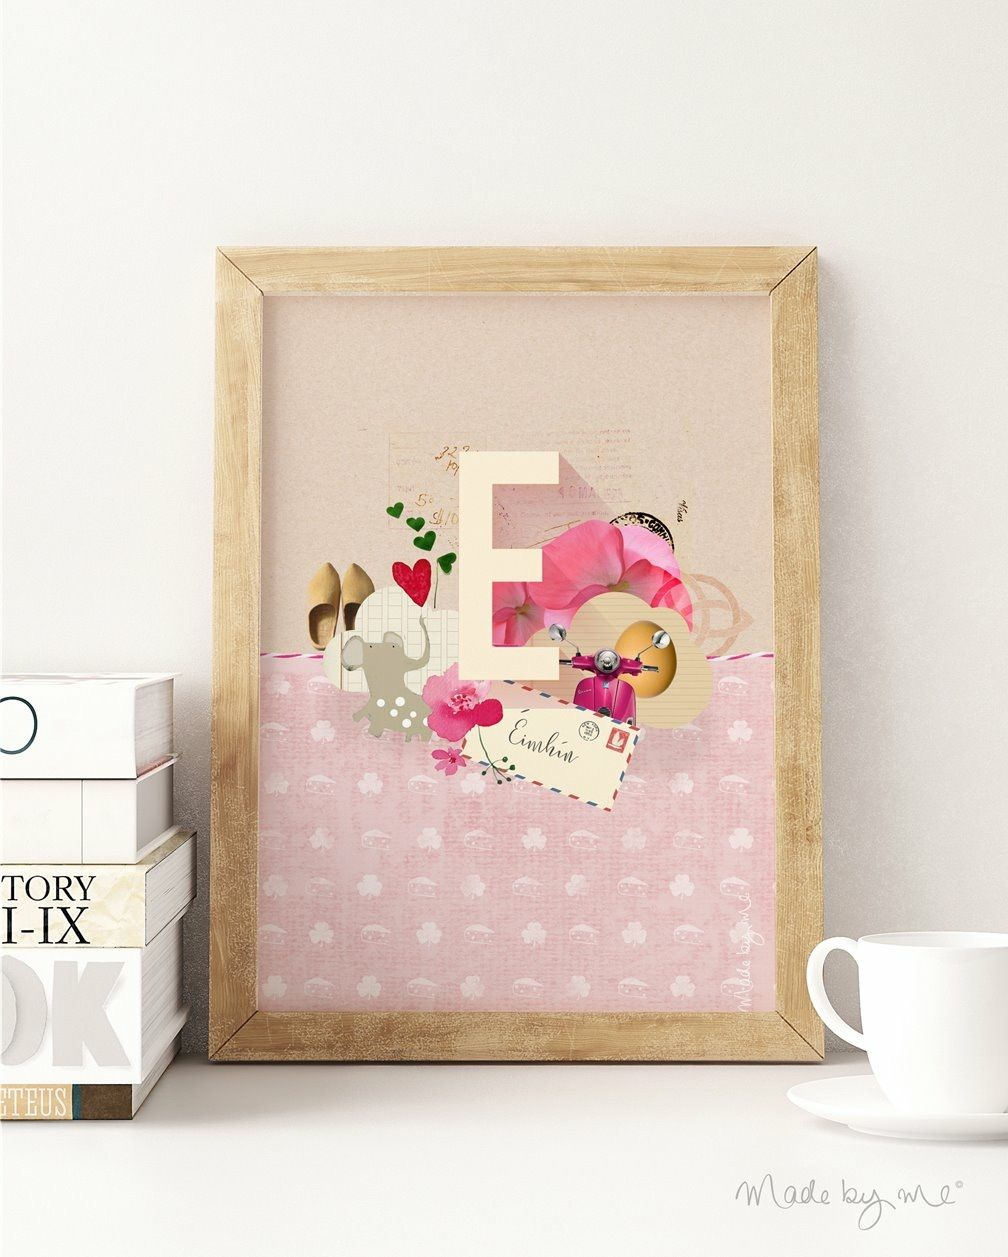 Made To Order Letter E For Baby Eimhin On Etsy   Madebyme